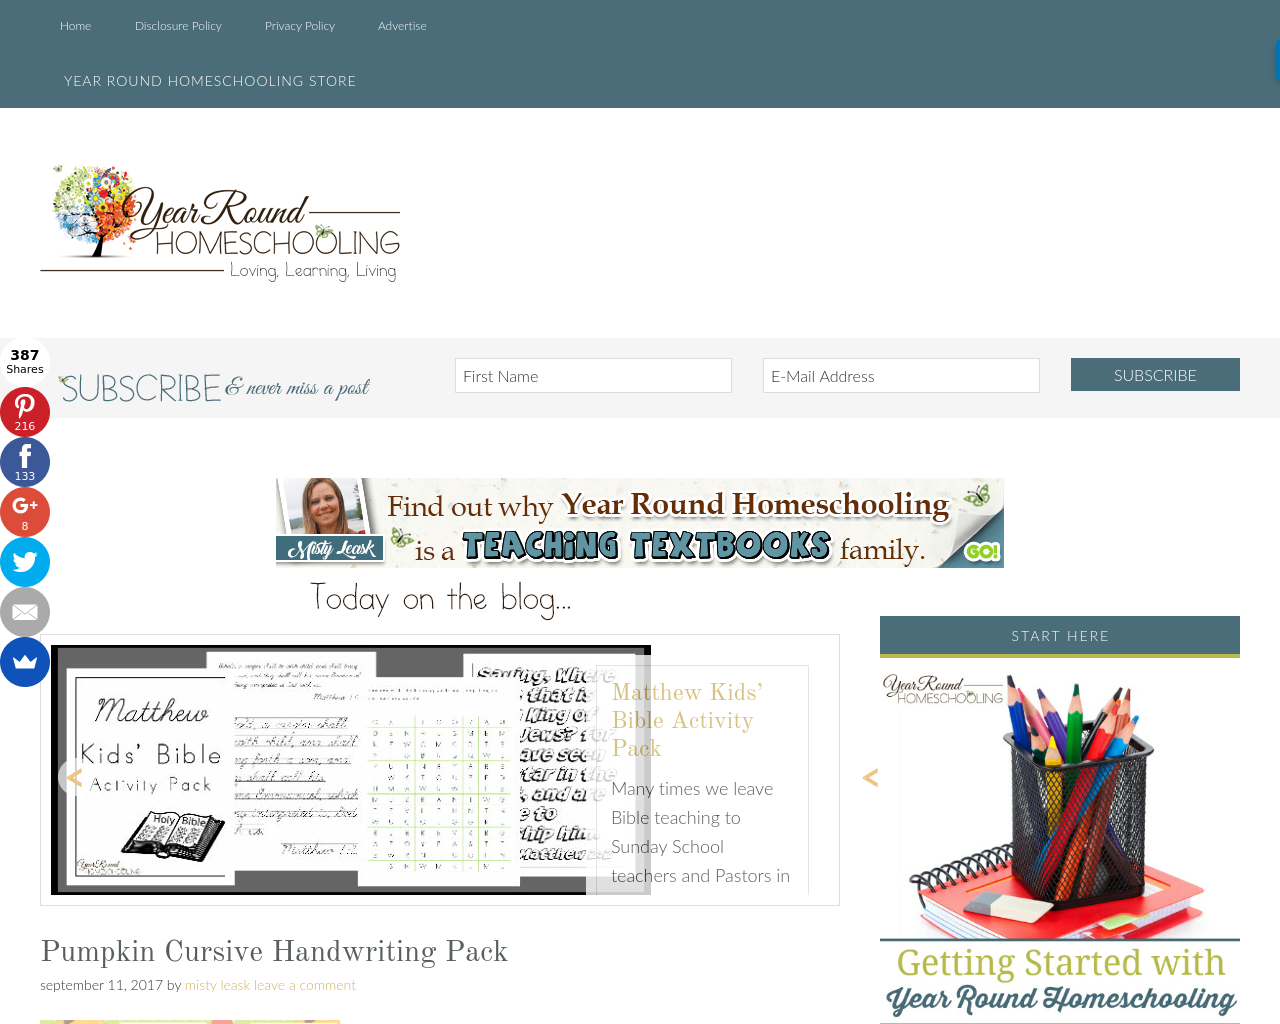 Year-Round-Homeschooling-Advertising-Reviews-Pricing